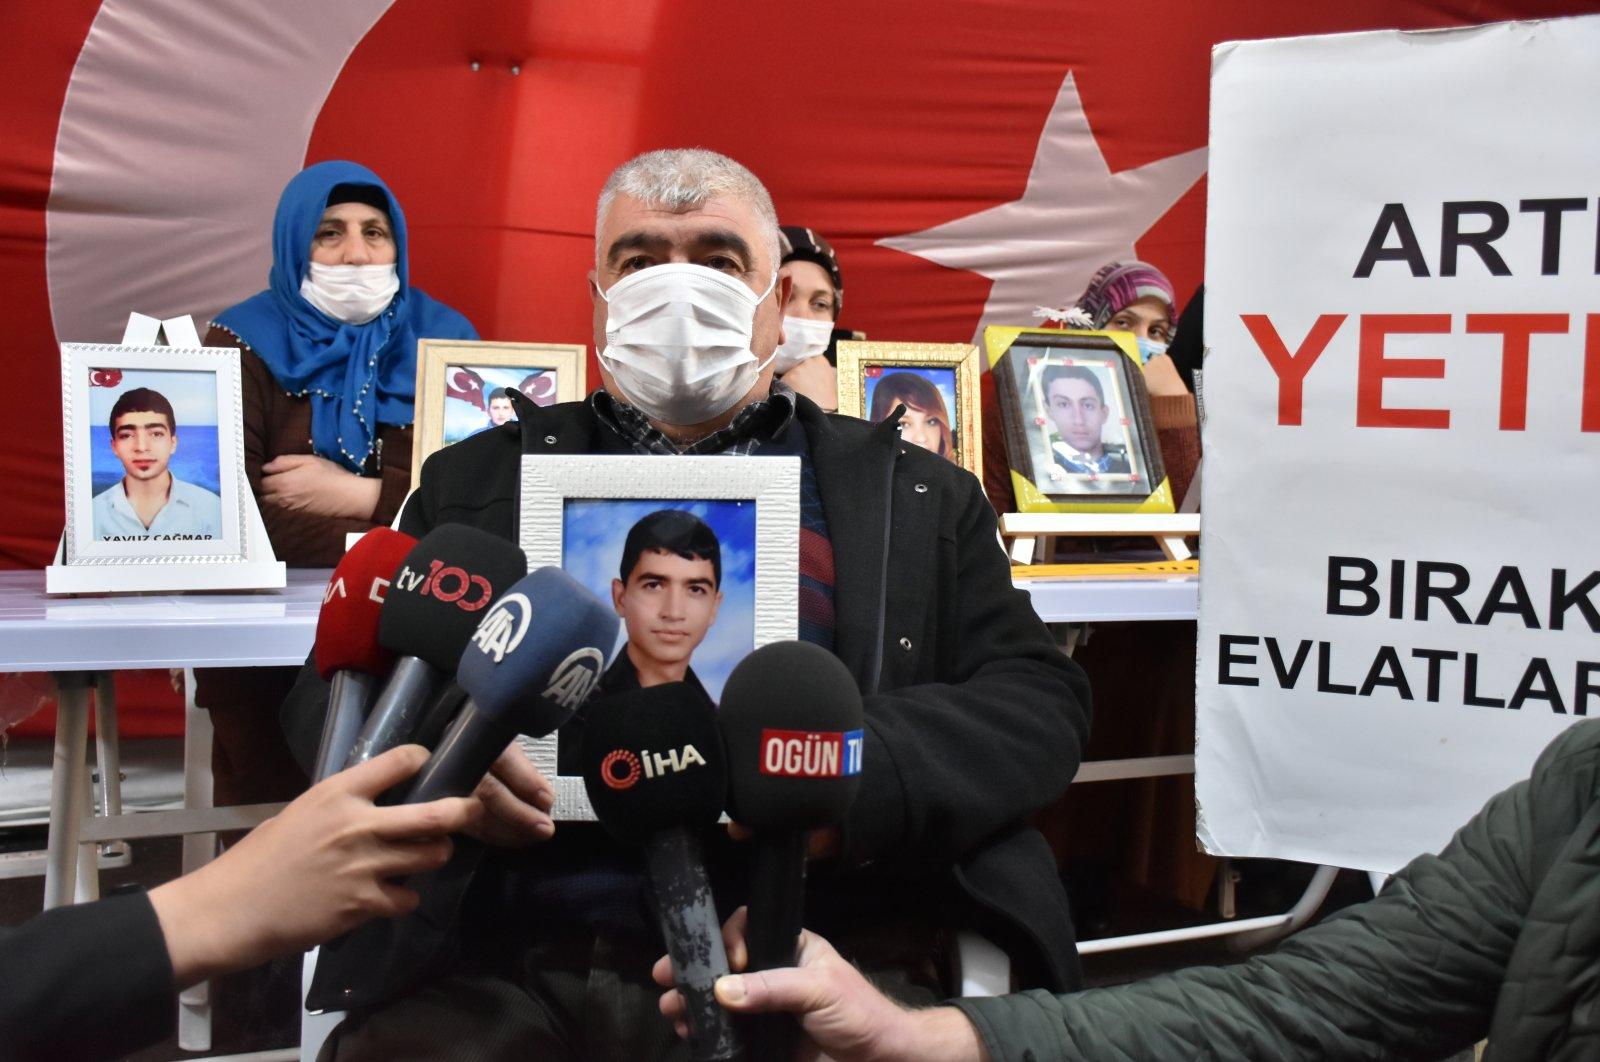 Medeni Alphan, father of Eyüp Alphan who was abducted by PKK terrorists, continues his protests in the tent set up outside the HDP's Diyarbakır office, Feb. 22, 2021 (AA Photo)